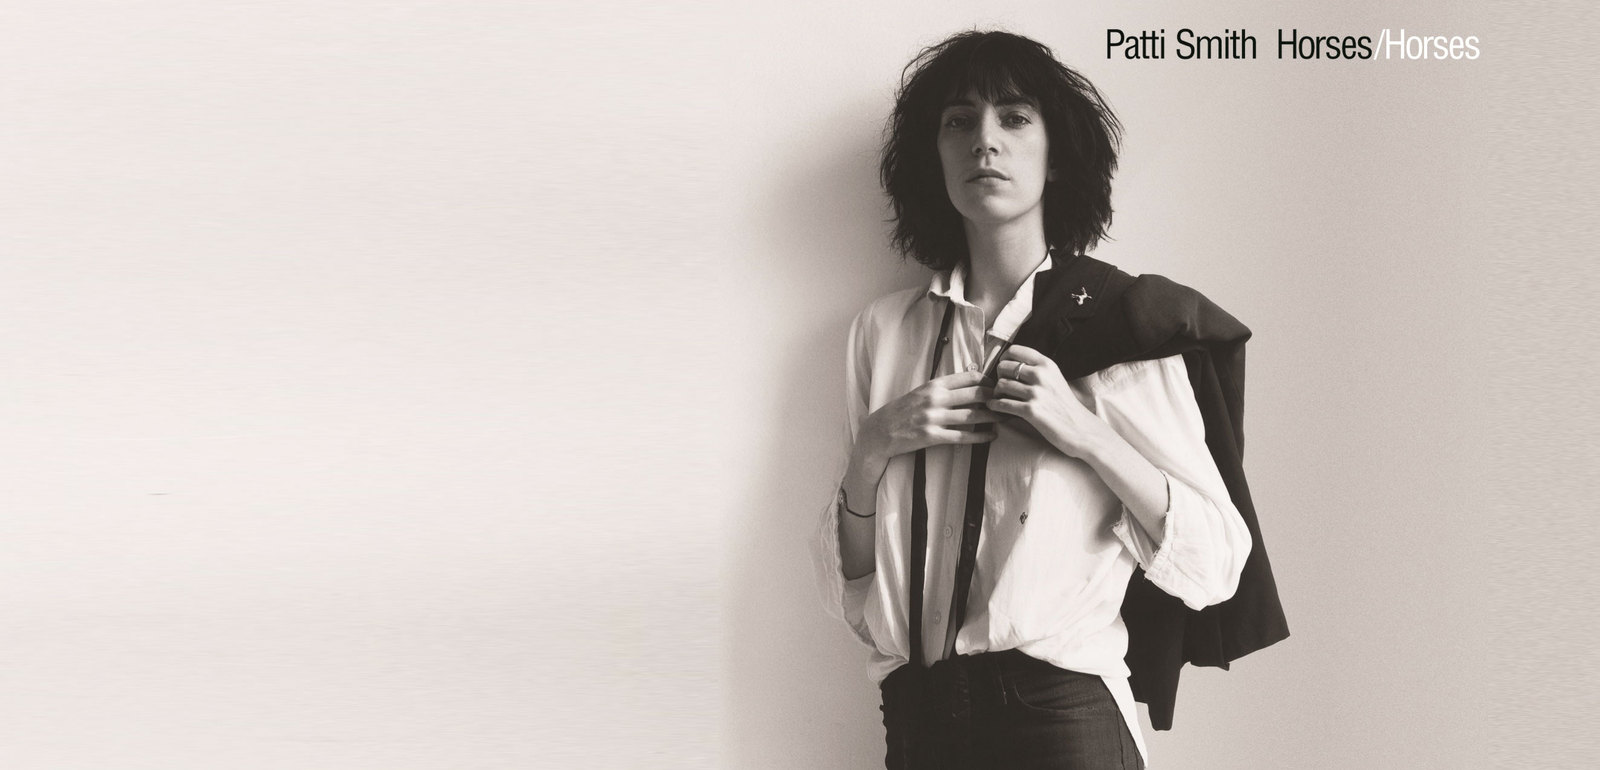 Horses Patti Smith Patti Smith Horses Pos...